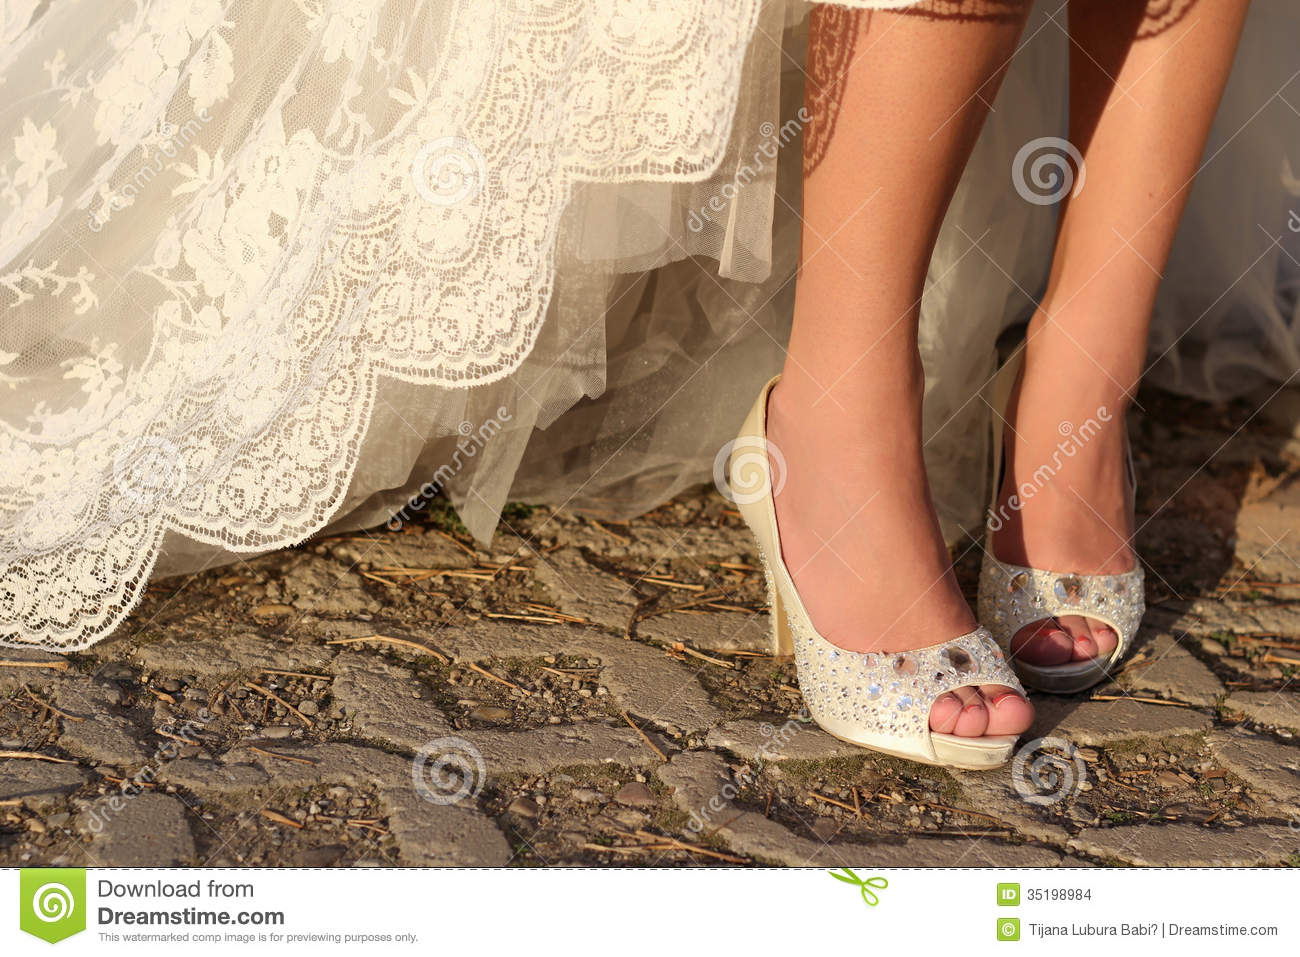 White shoes for wedding stock photo. Image of foot, pretty - 35198984